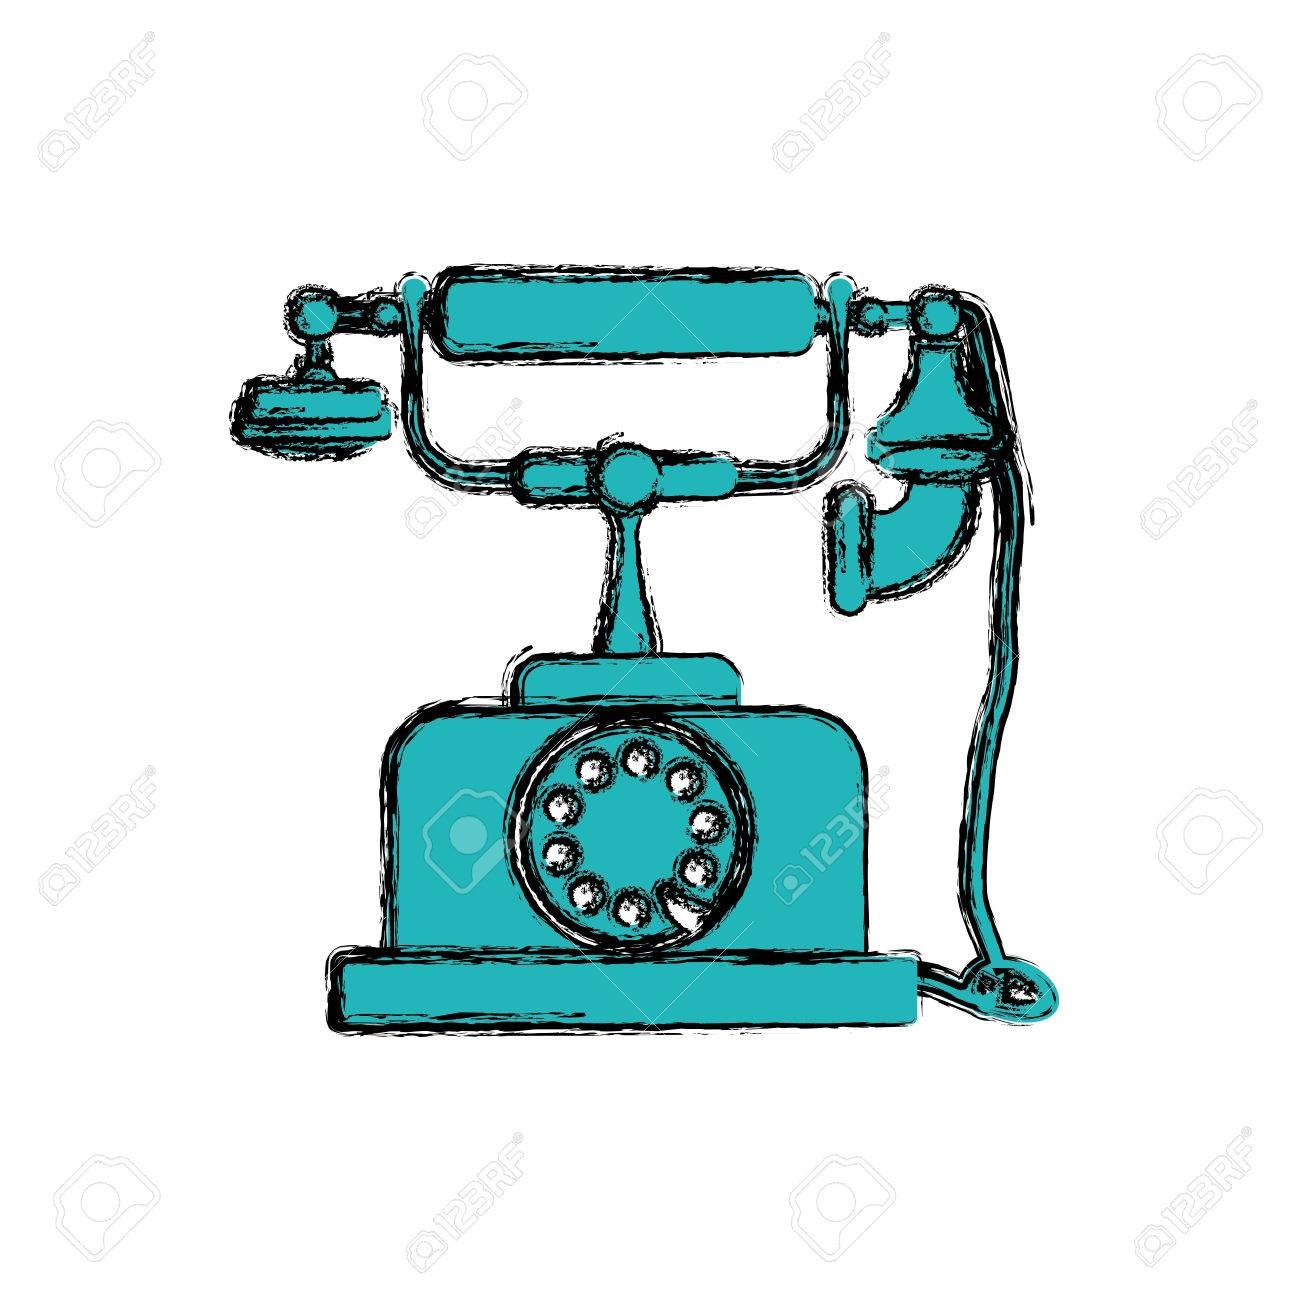 720 Home Phone Number Stock Vector Illustration And Royalty Free ...